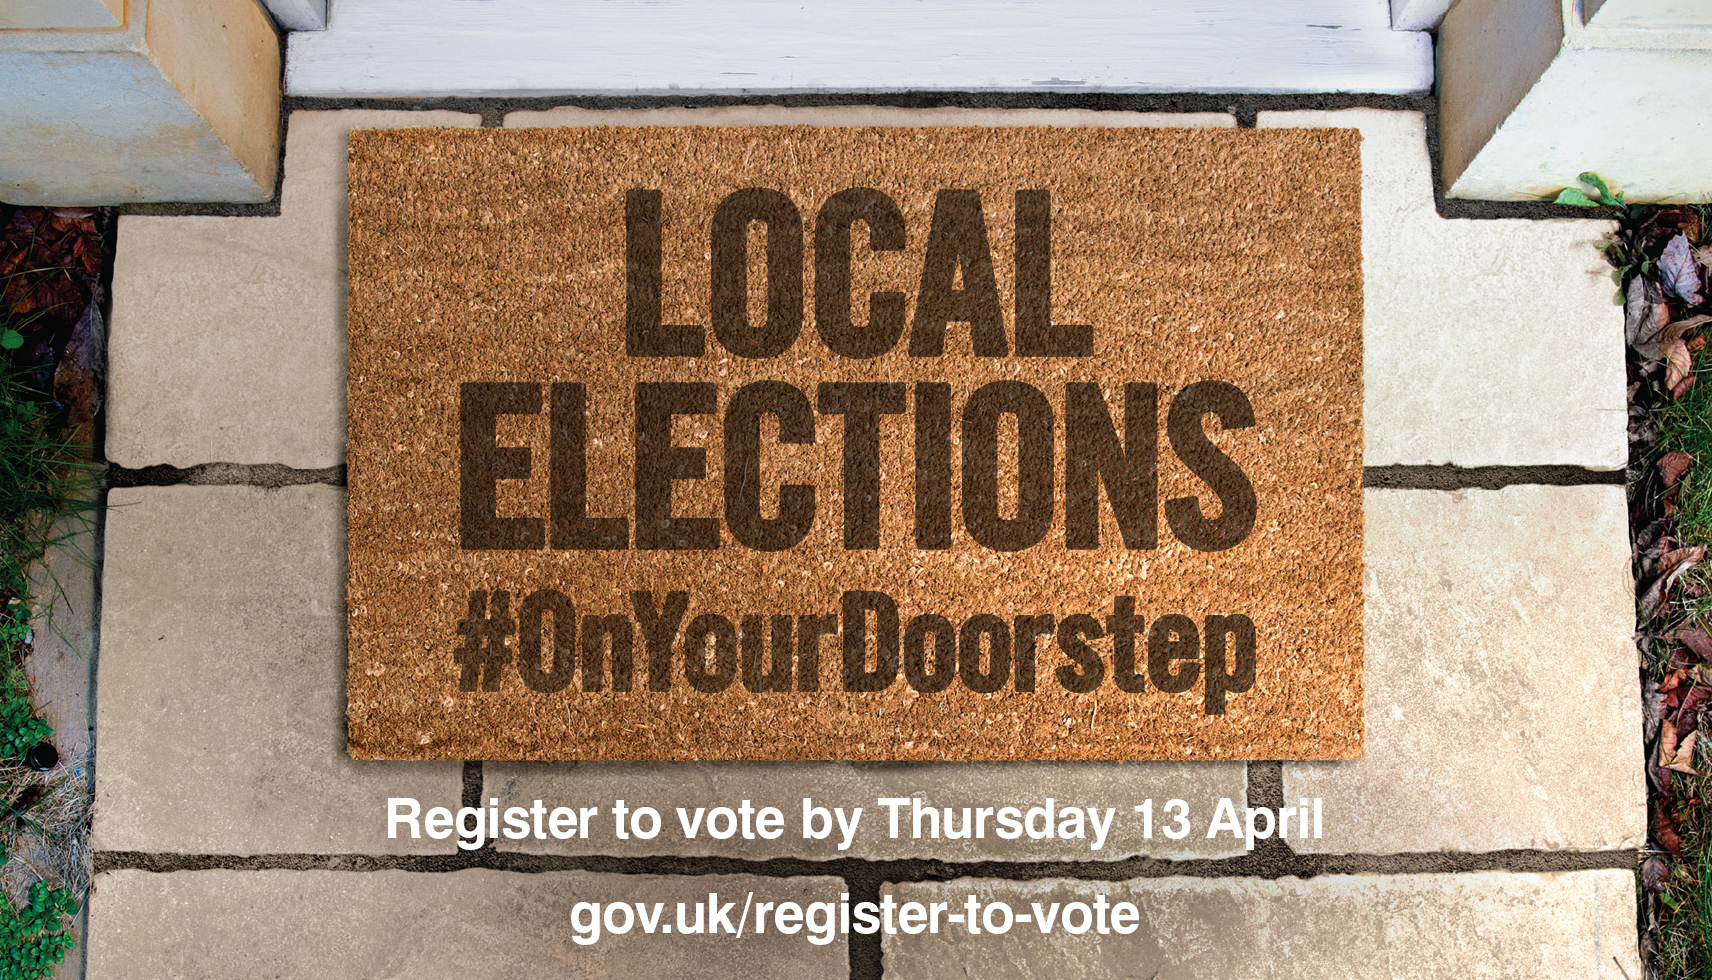 Make sure you're on the electoral register